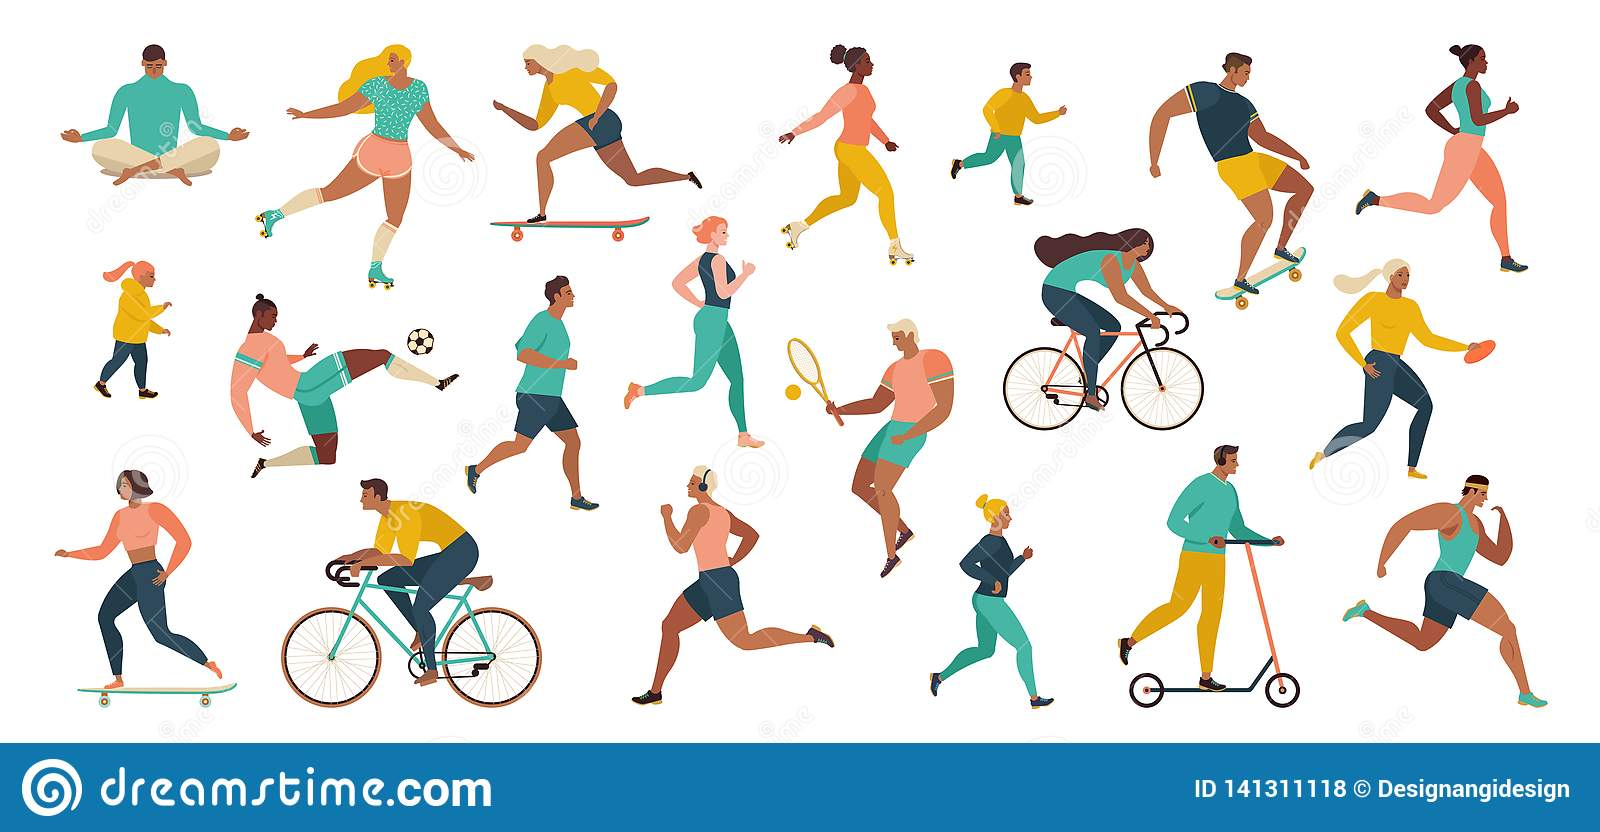 Group of people performing sports activities at park doing yoga and gymnastics exercises, jogging, riding bicycles, playing ball